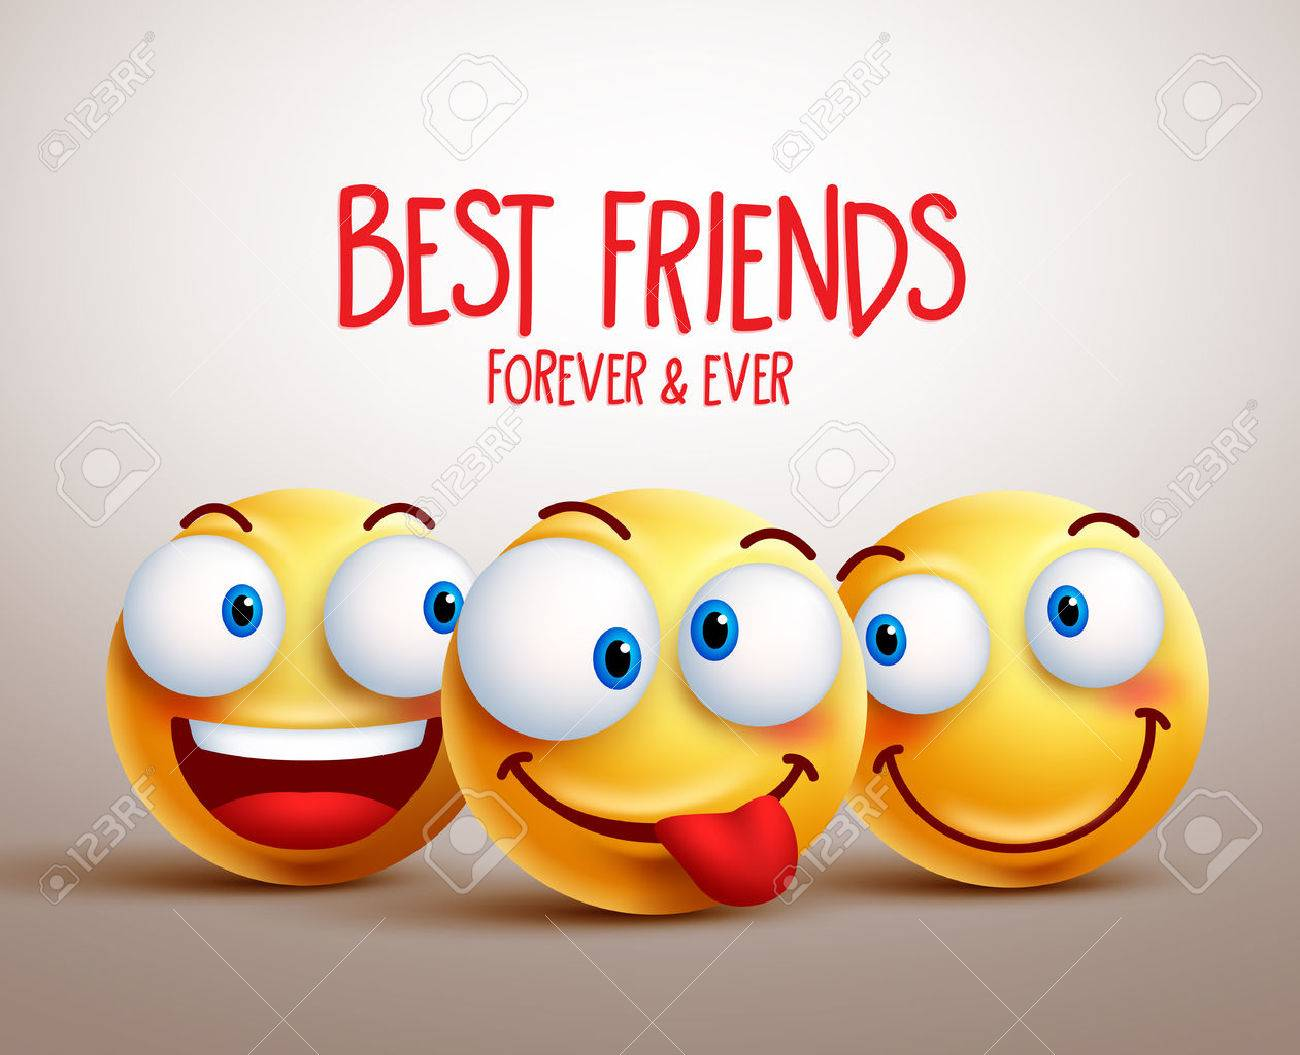 Best Friends Smiley Face Vector Design Concept With Funny Facial Royalty Free Cliparts Vectors And Stock Illustration Image 56962262